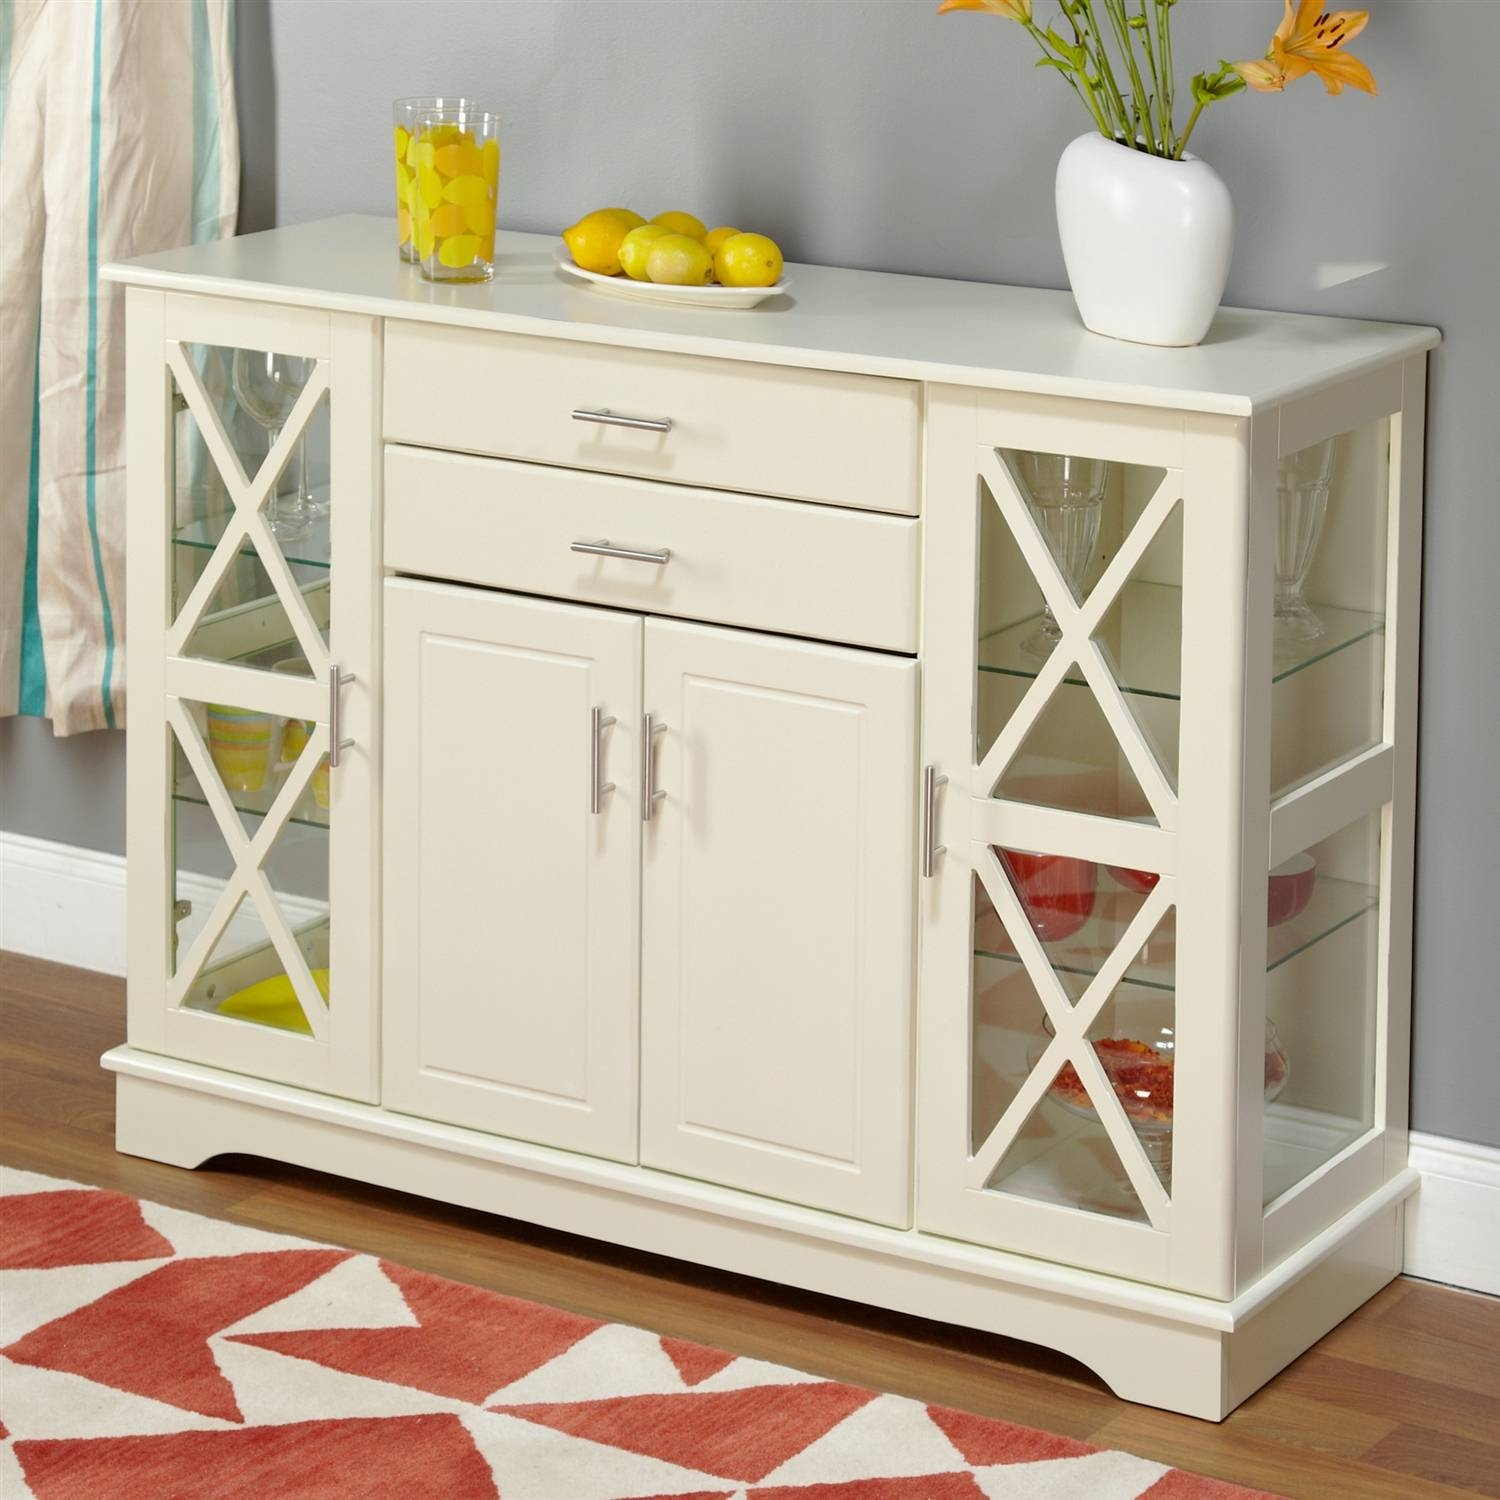 Sideboards & Buffets in White Sideboards With Glass Doors (Image 12 of 15)